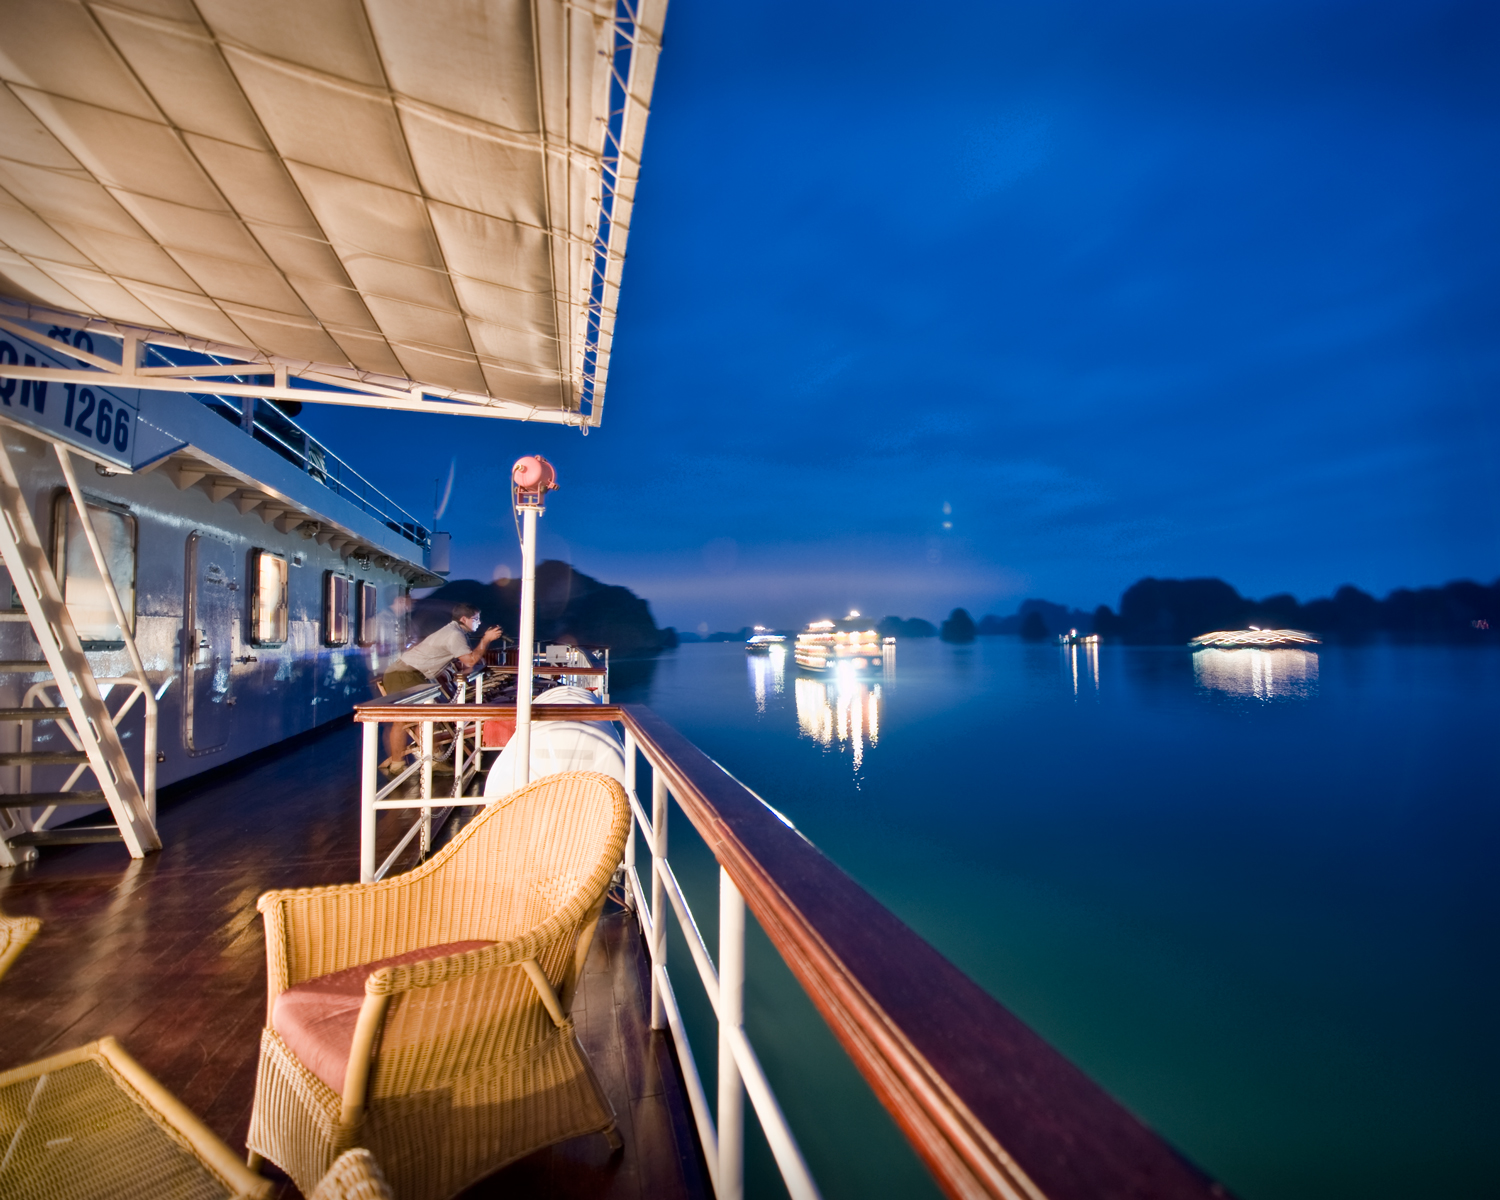 On board our cruise ship at night